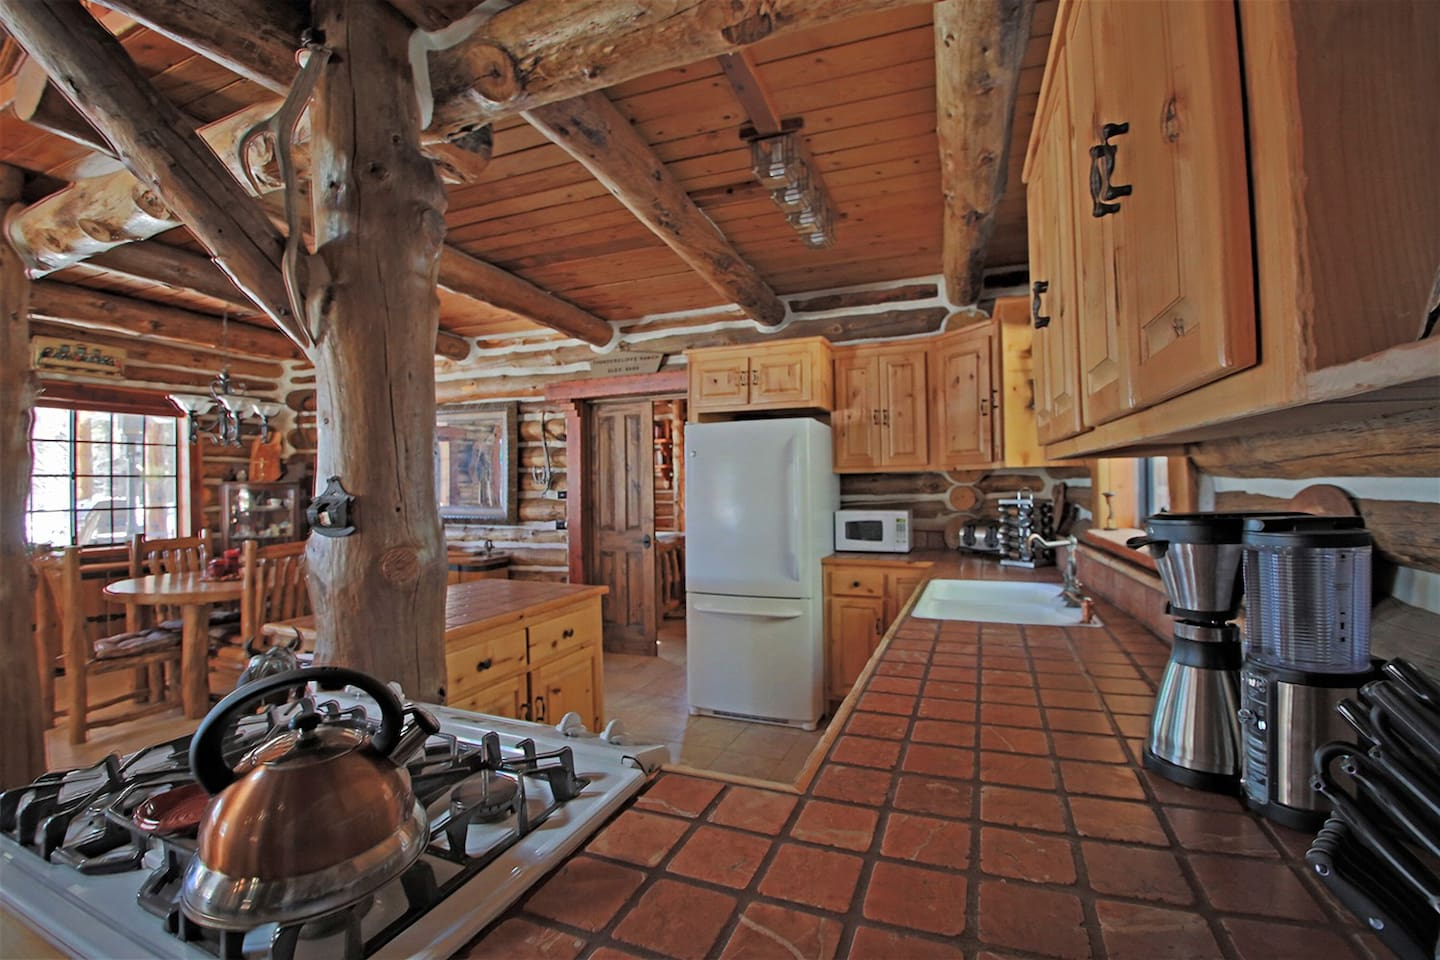 flagstaff cabins noaz homes dr in for rent resd coy sale w az